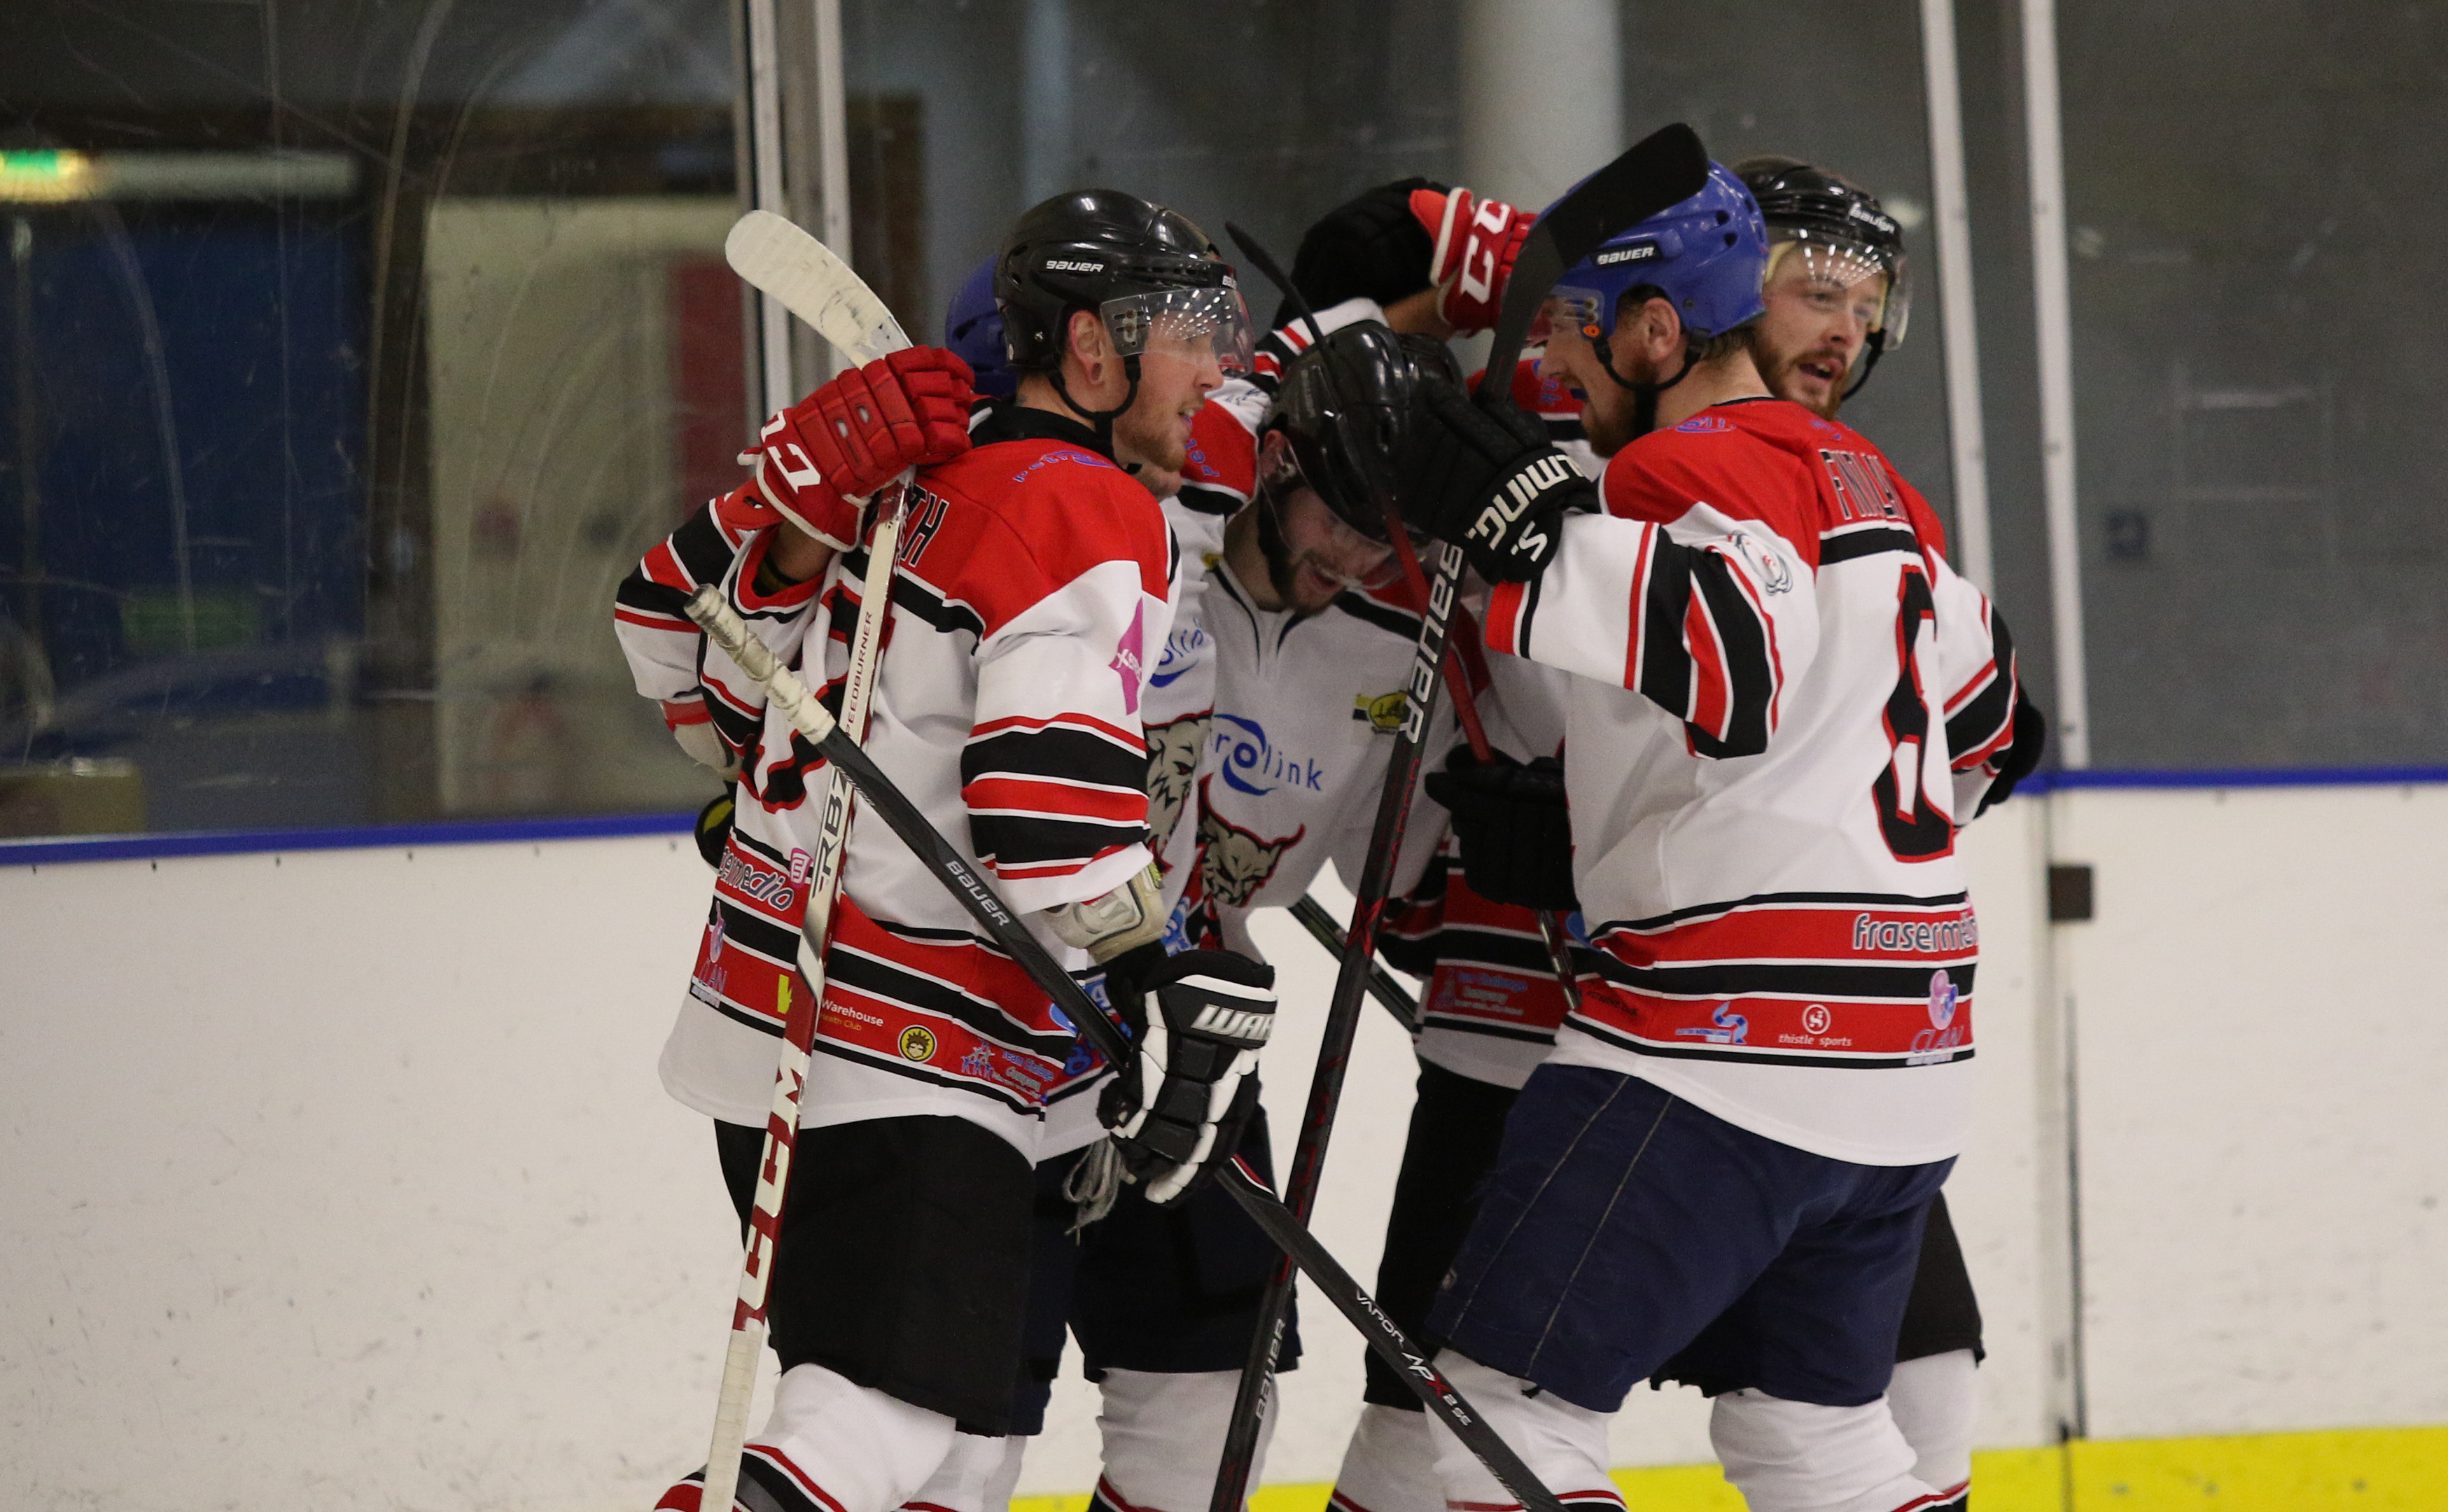 Lynx players react after Lewis McIntosh's goal. Picture by Ferguson Photography.